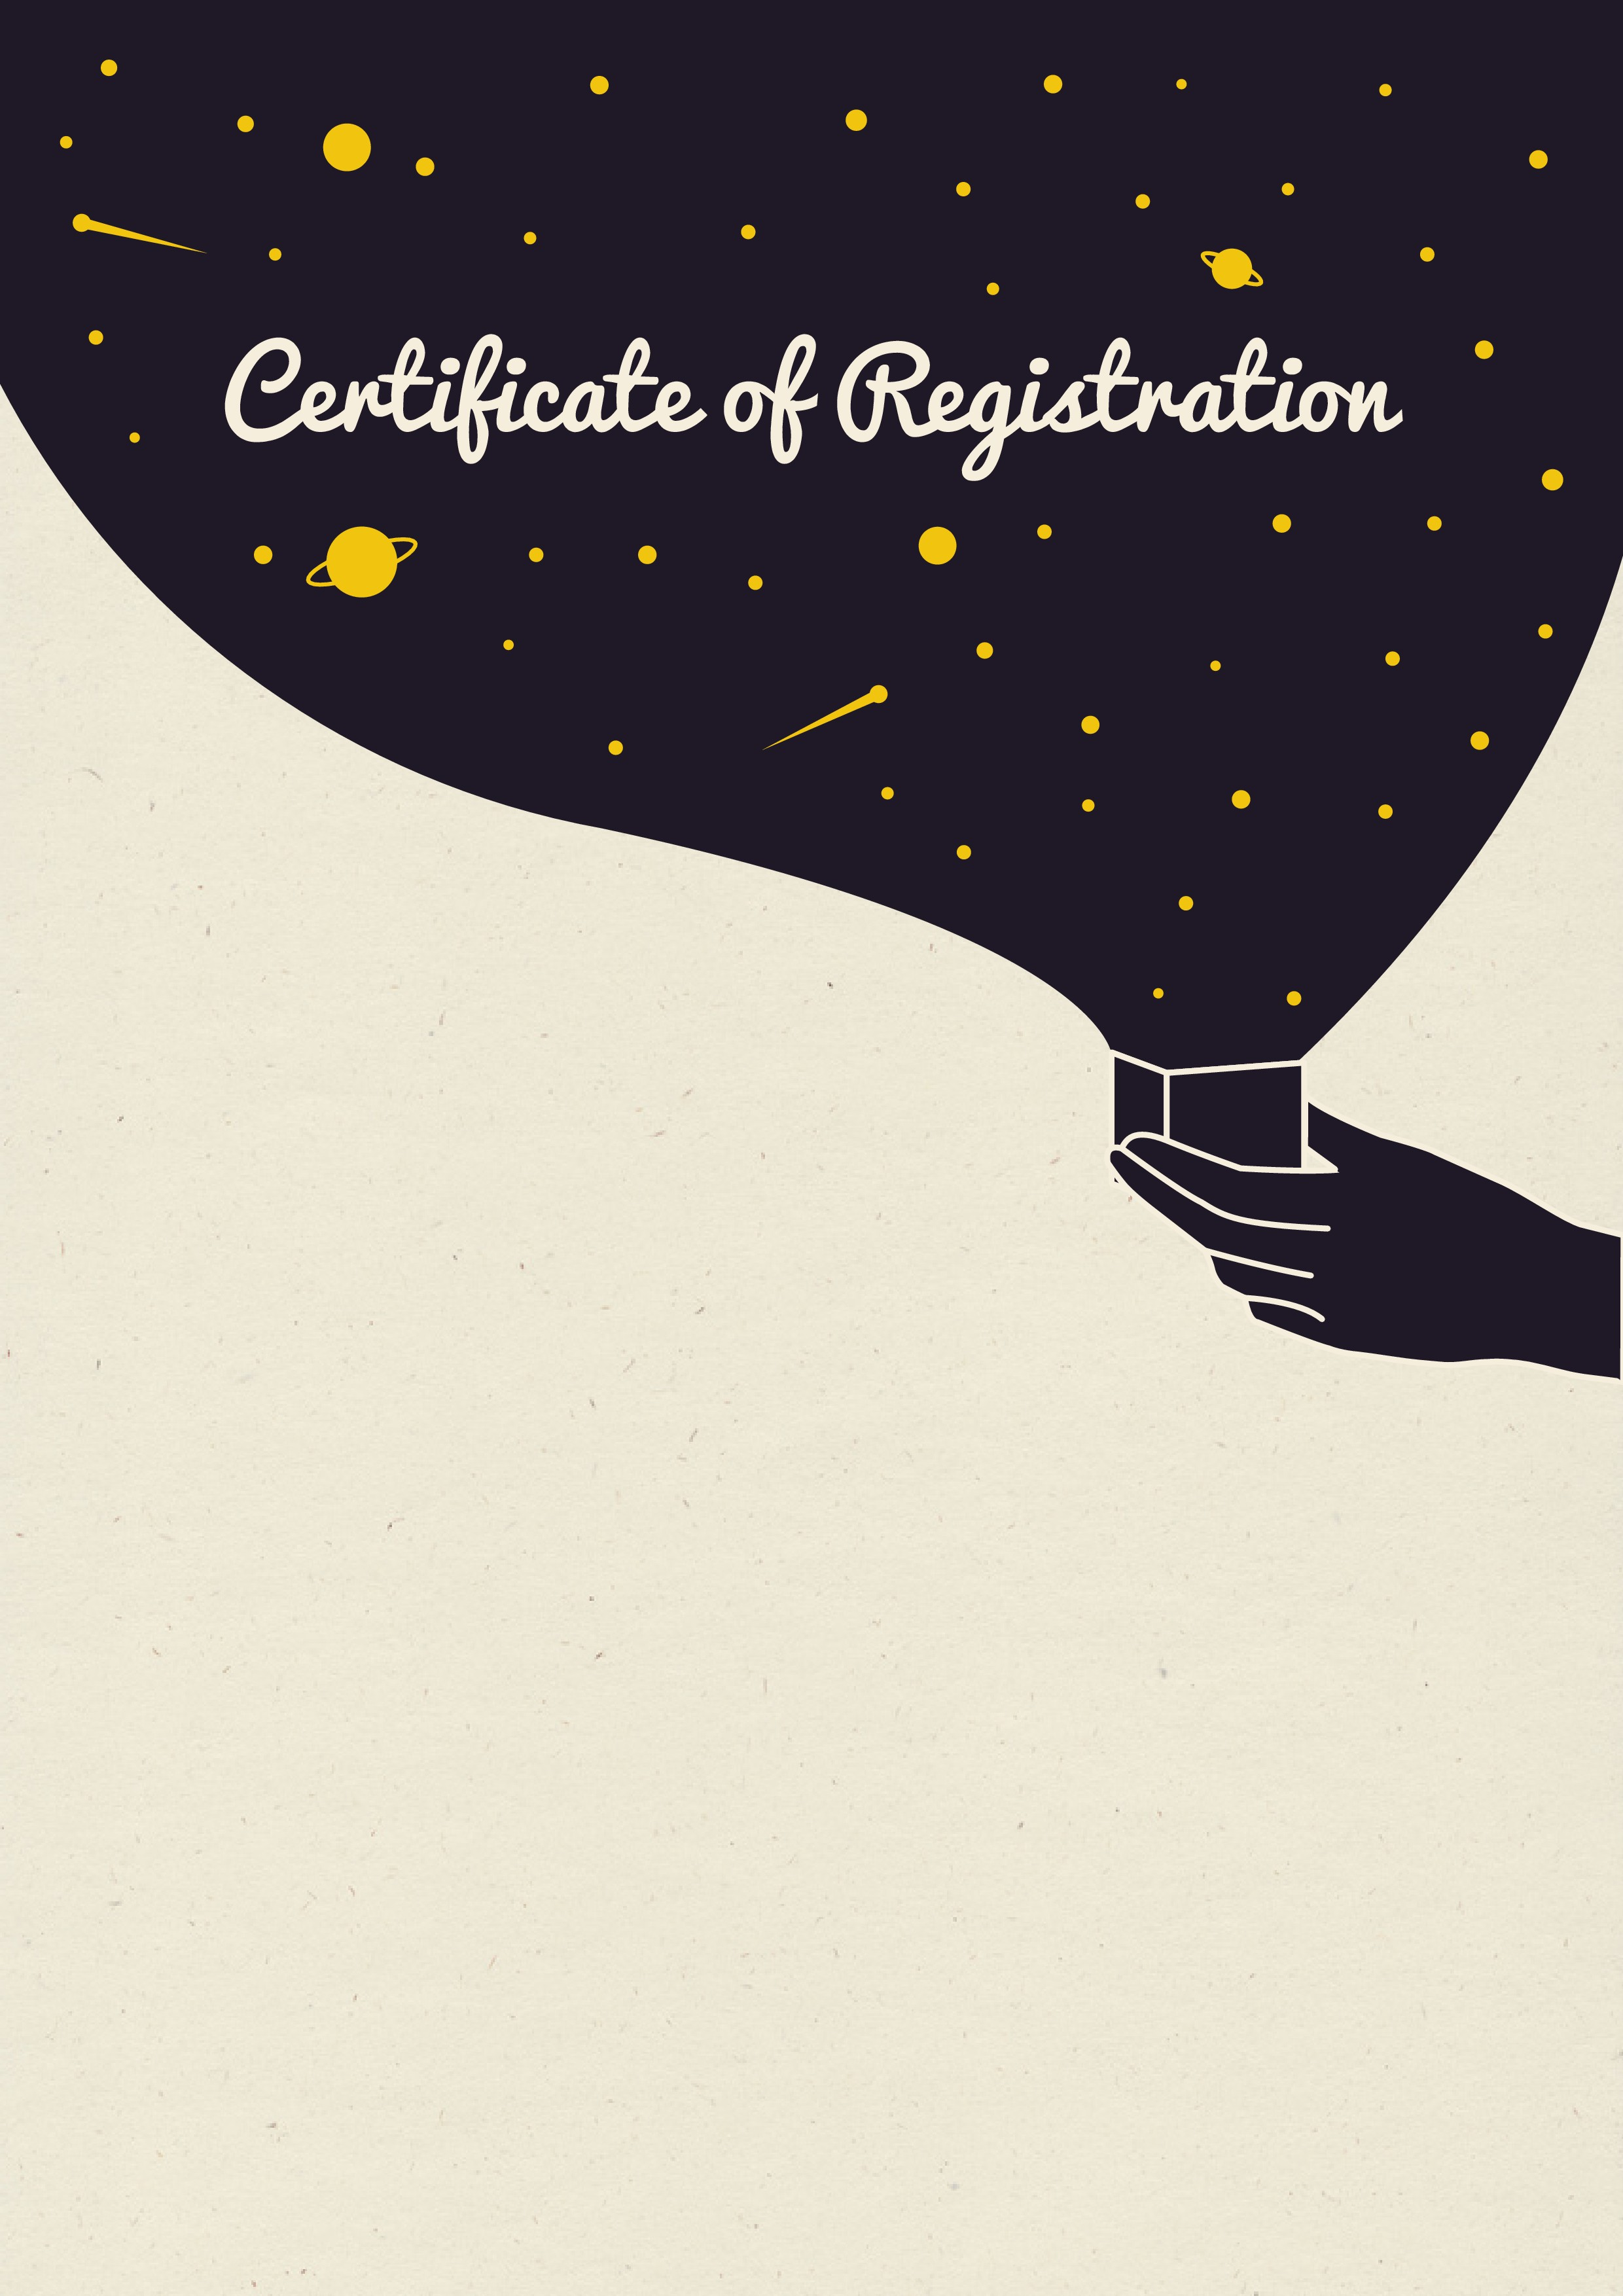 Create a stunning space themed certificate template for Interstellar Registry